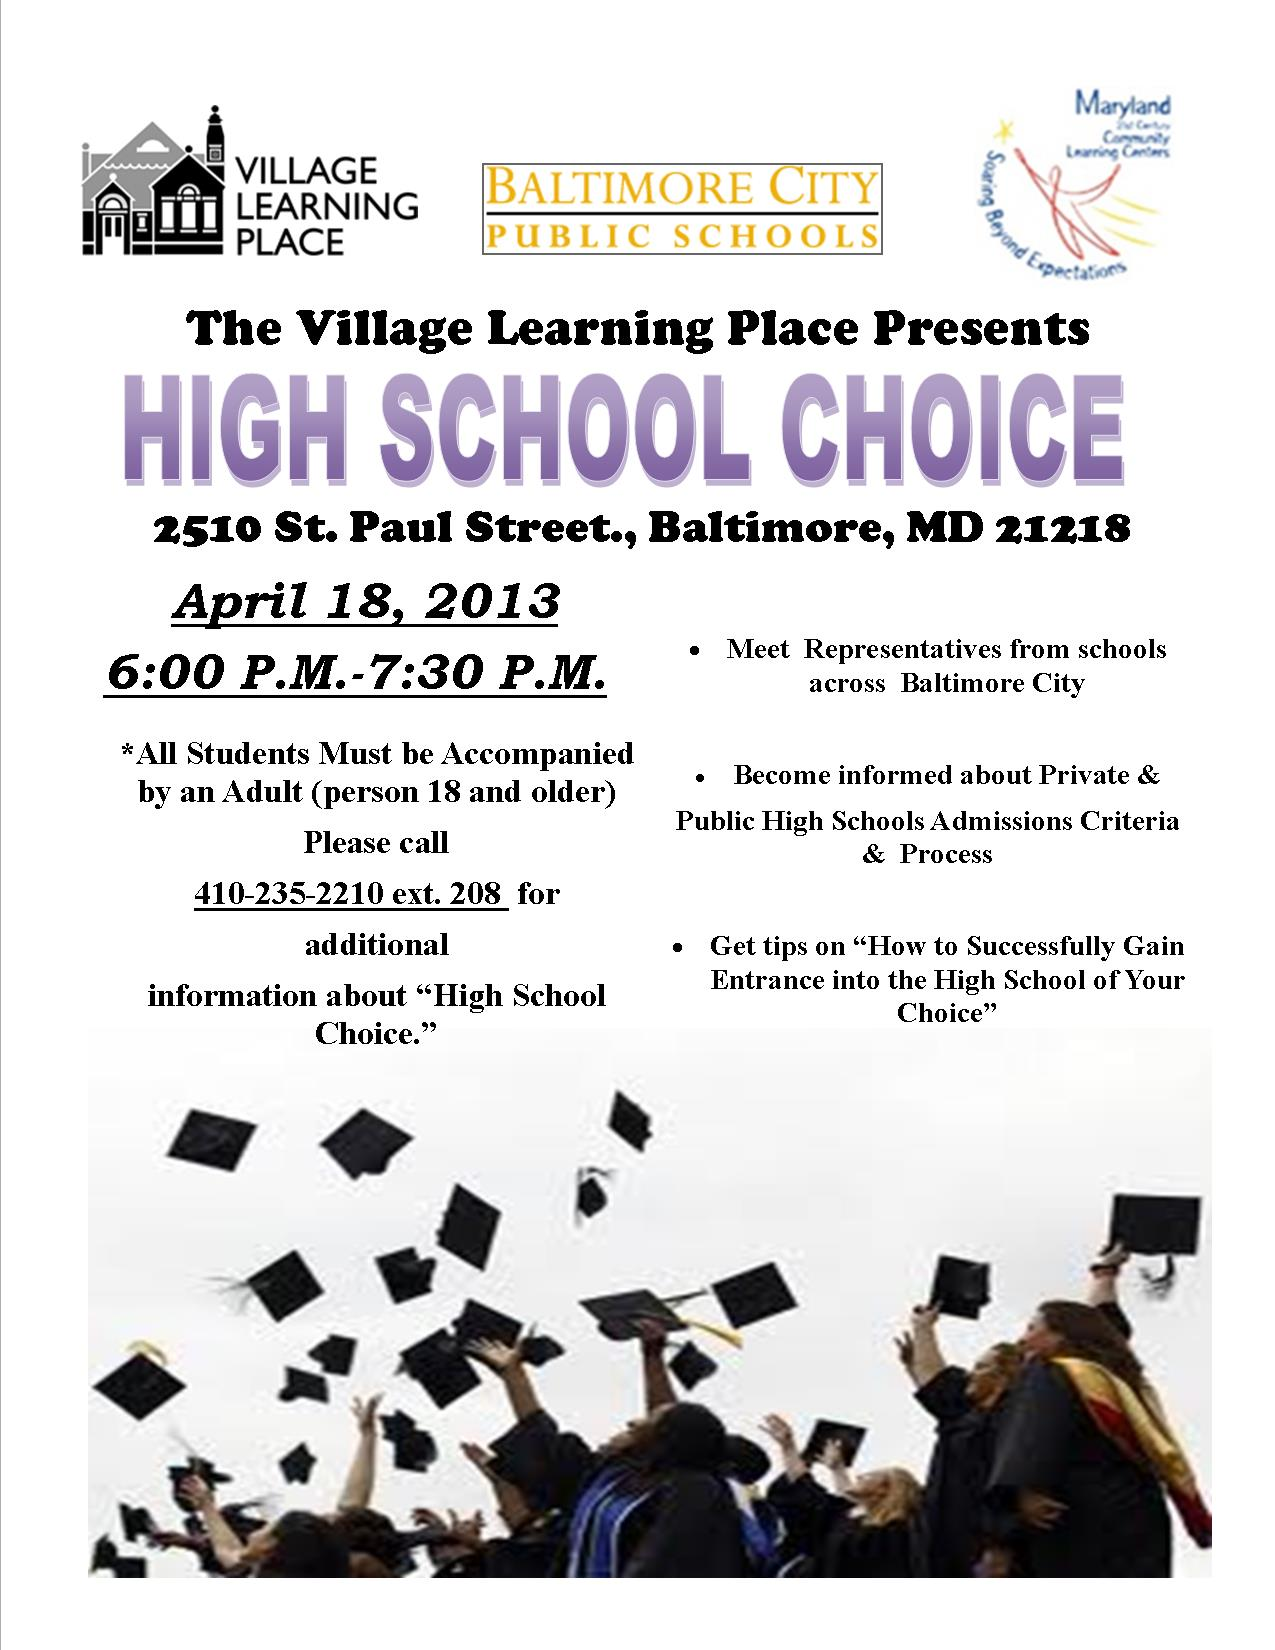 High School Choice Flyer 2012-2013